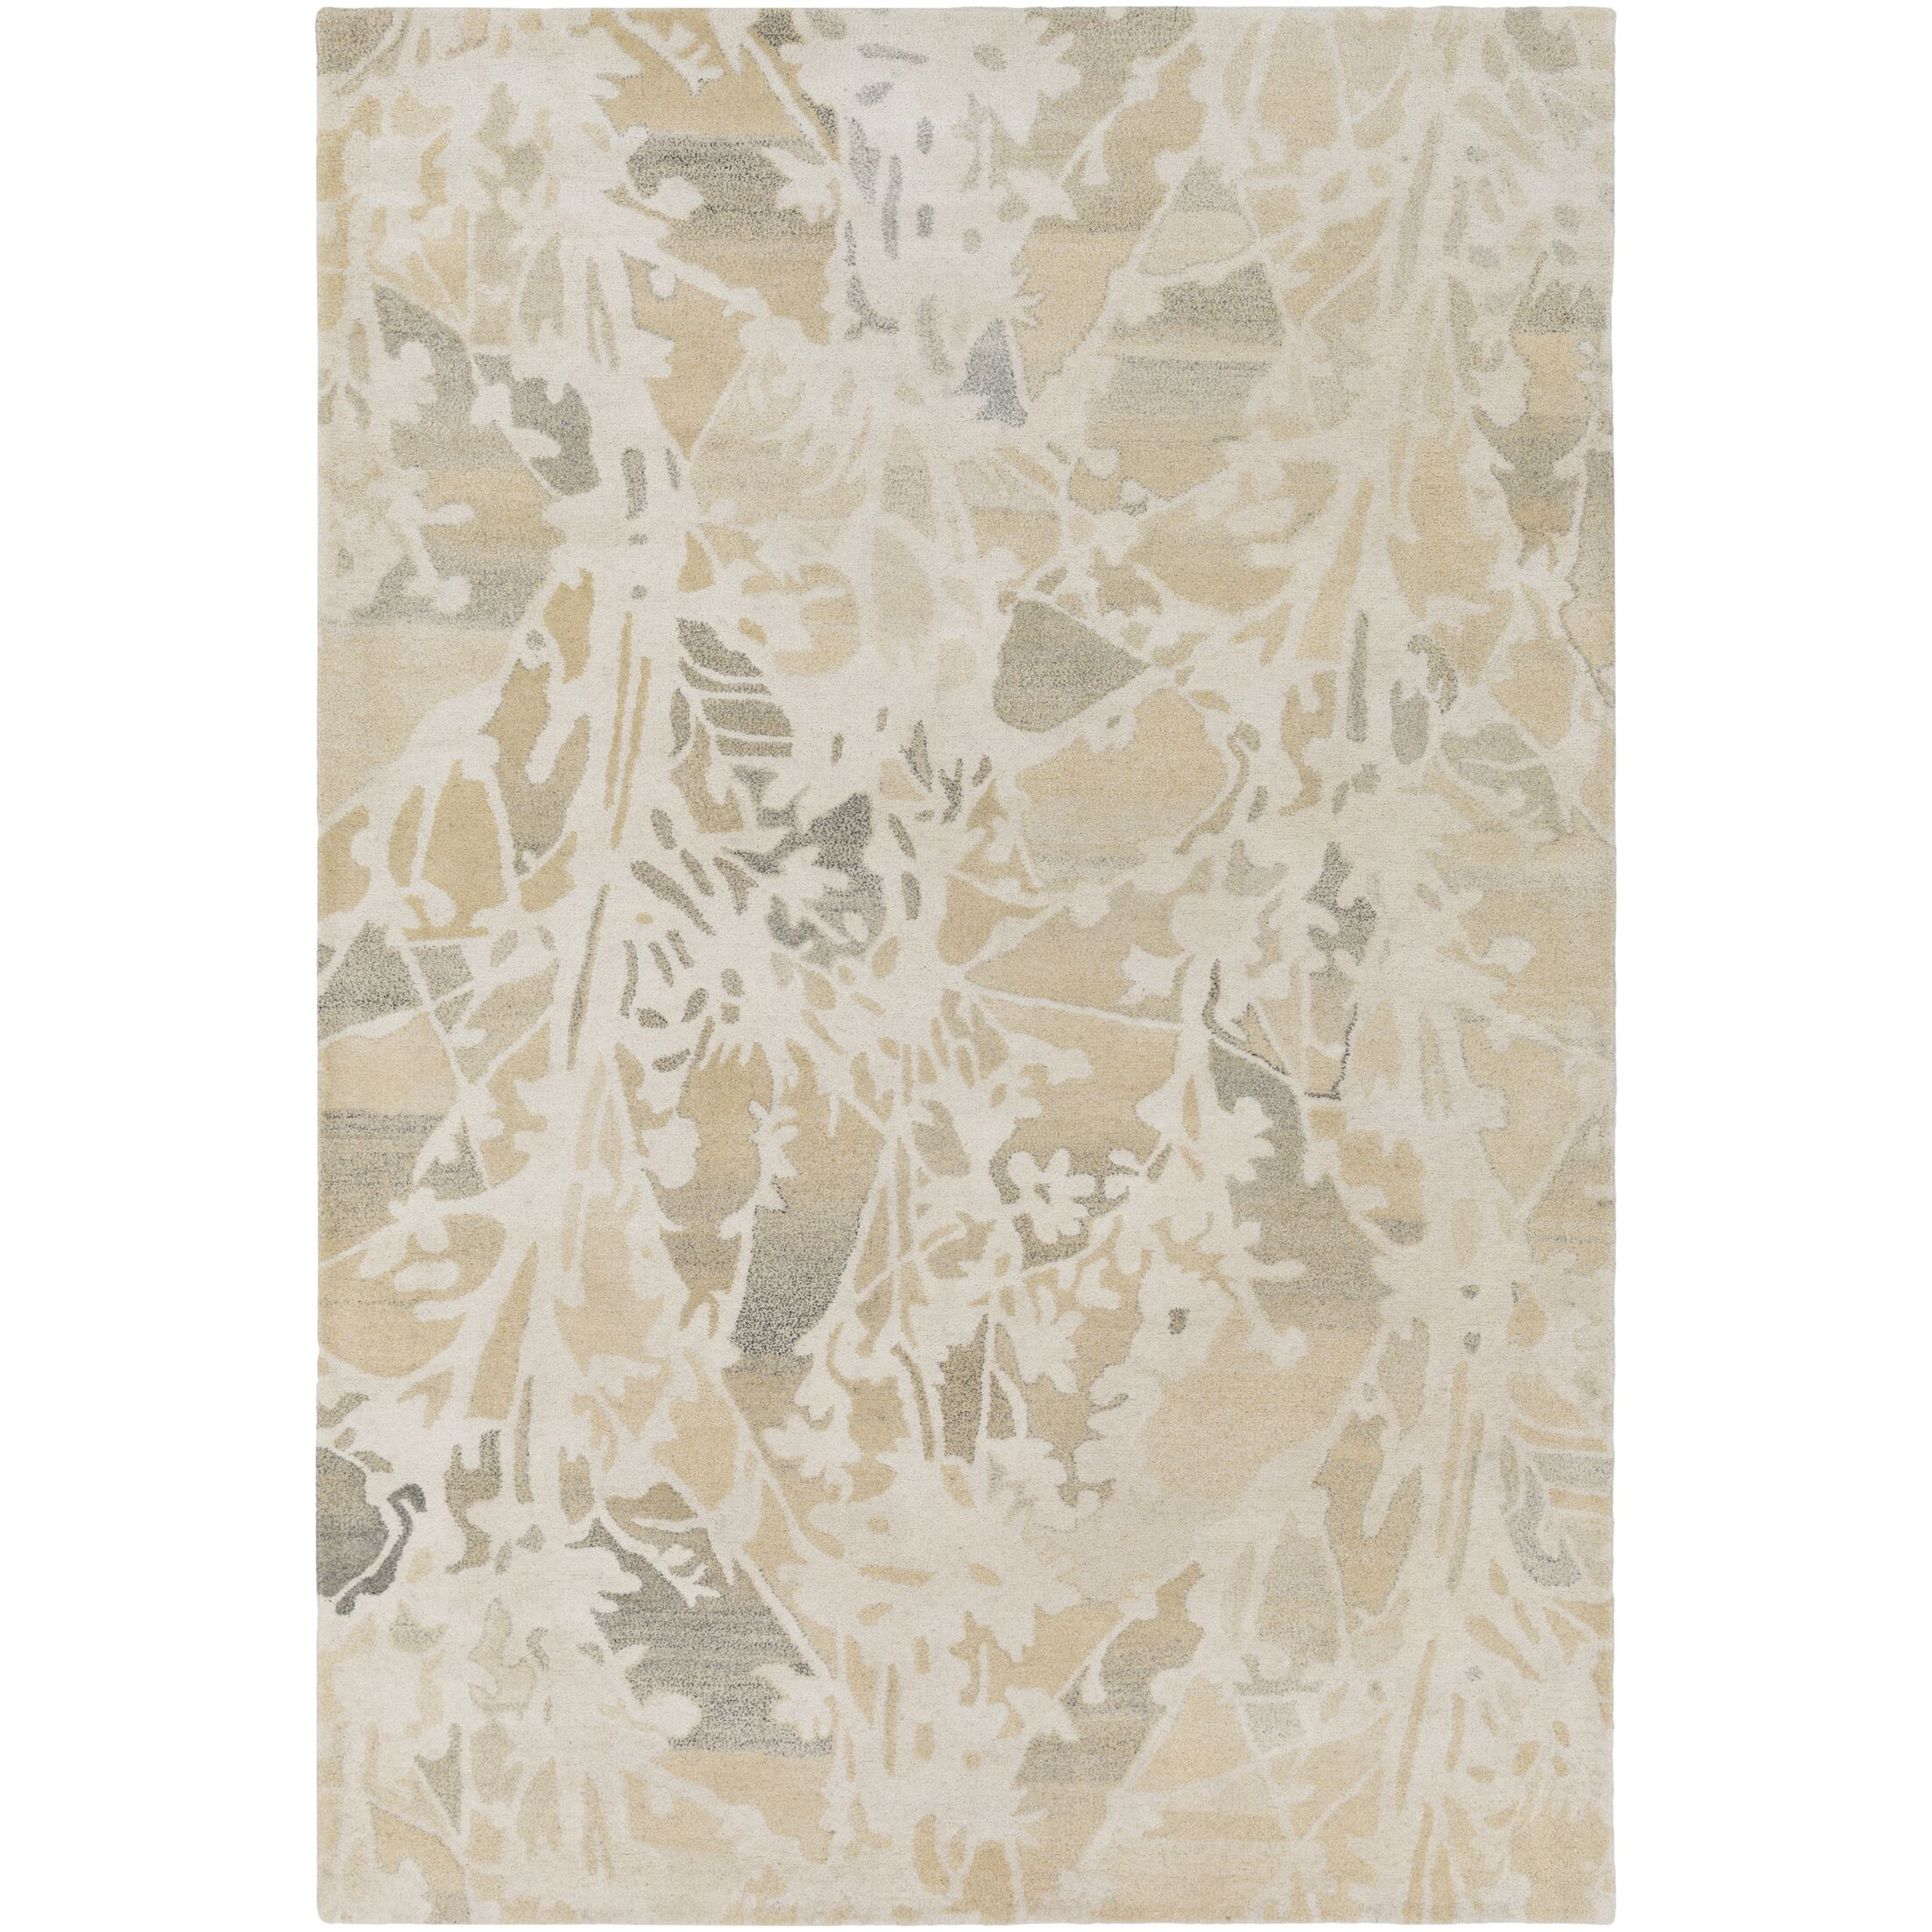 Heather Hand-Tufted Cream/Butter Area Rug Rug Size: Rectangle 5' x 7'6